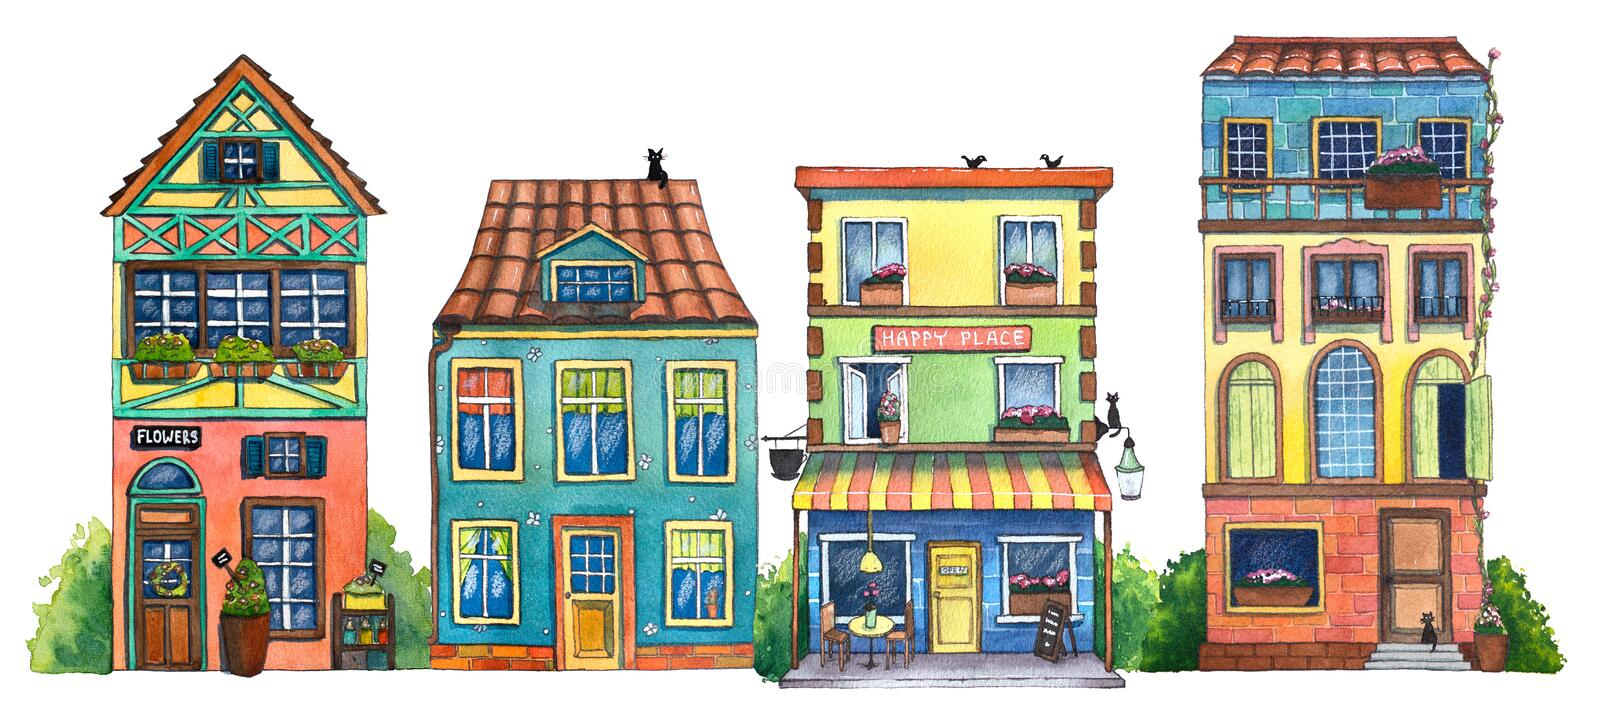 Watercolor street with cafe, houses, flowers shop, and cats. royalty free illustration